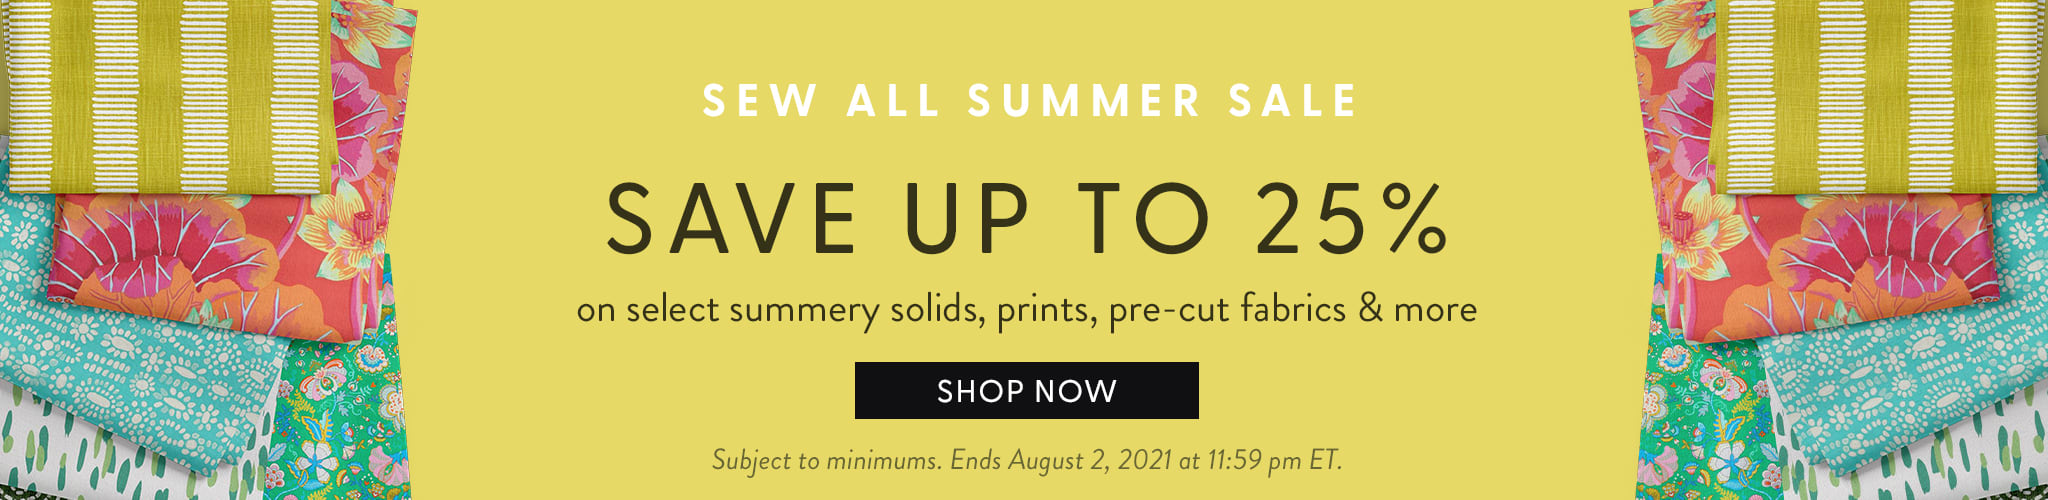 Sew all summer sale. Save up to 25% off on select summery solids, prints, pre-cut fabrics & more